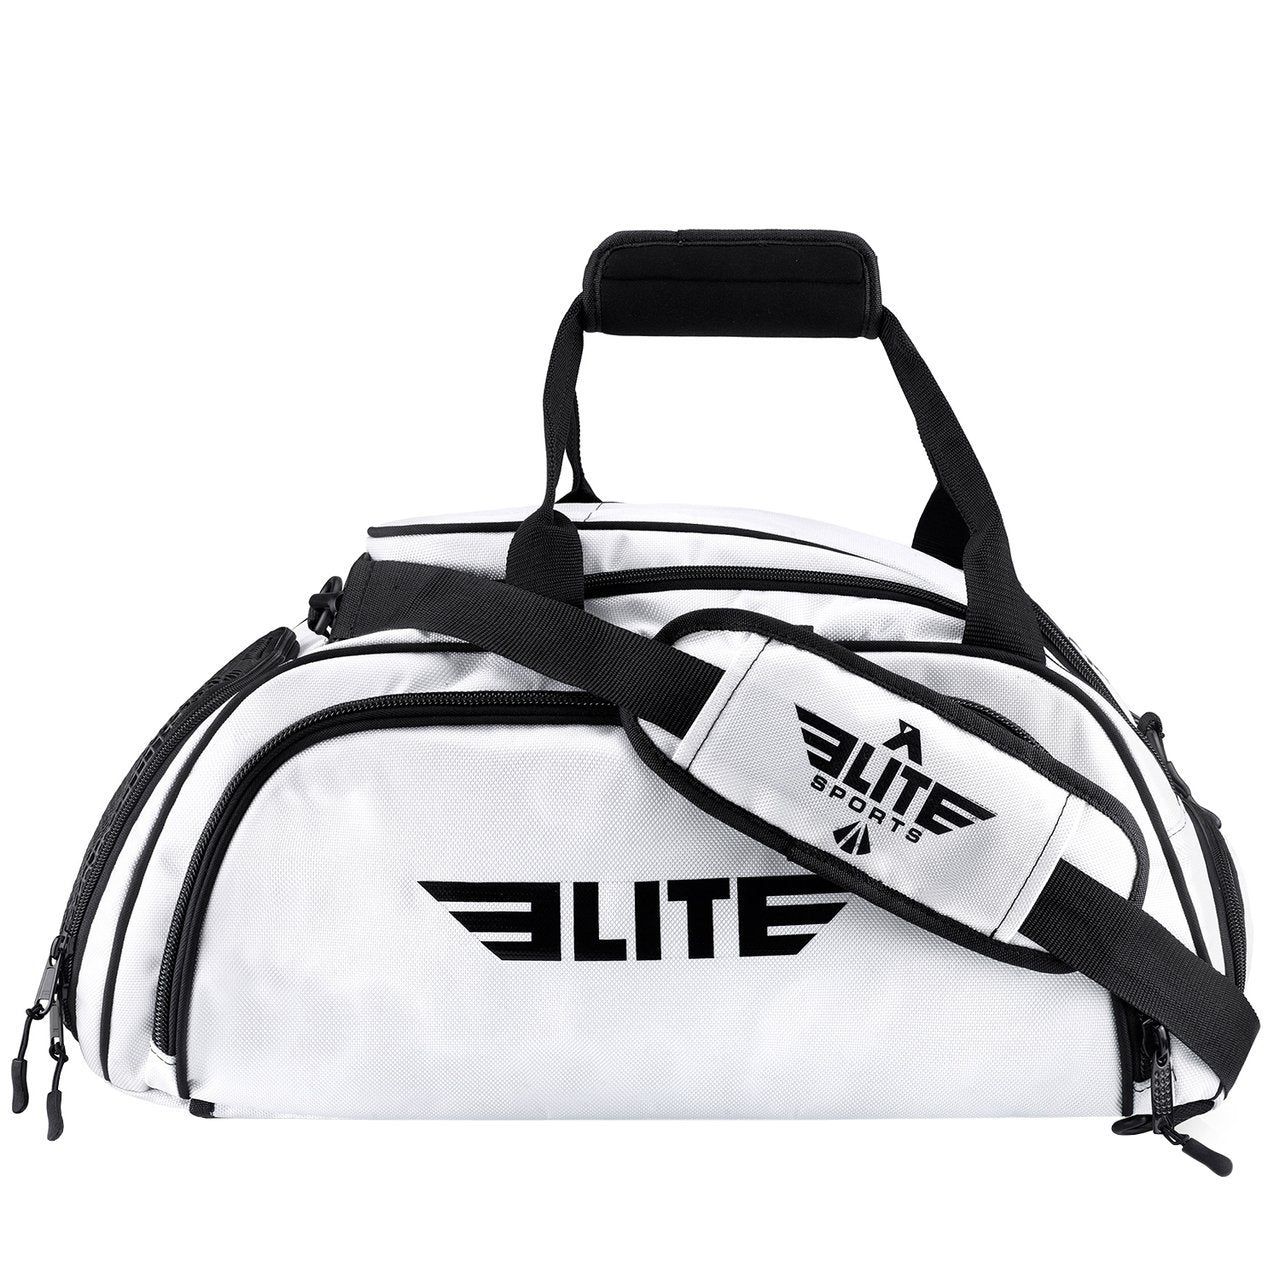 Load image into Gallery viewer, Elite Sports Warrior Series White Large Duffel Muay Thai Gear Gym Bag & Backpack